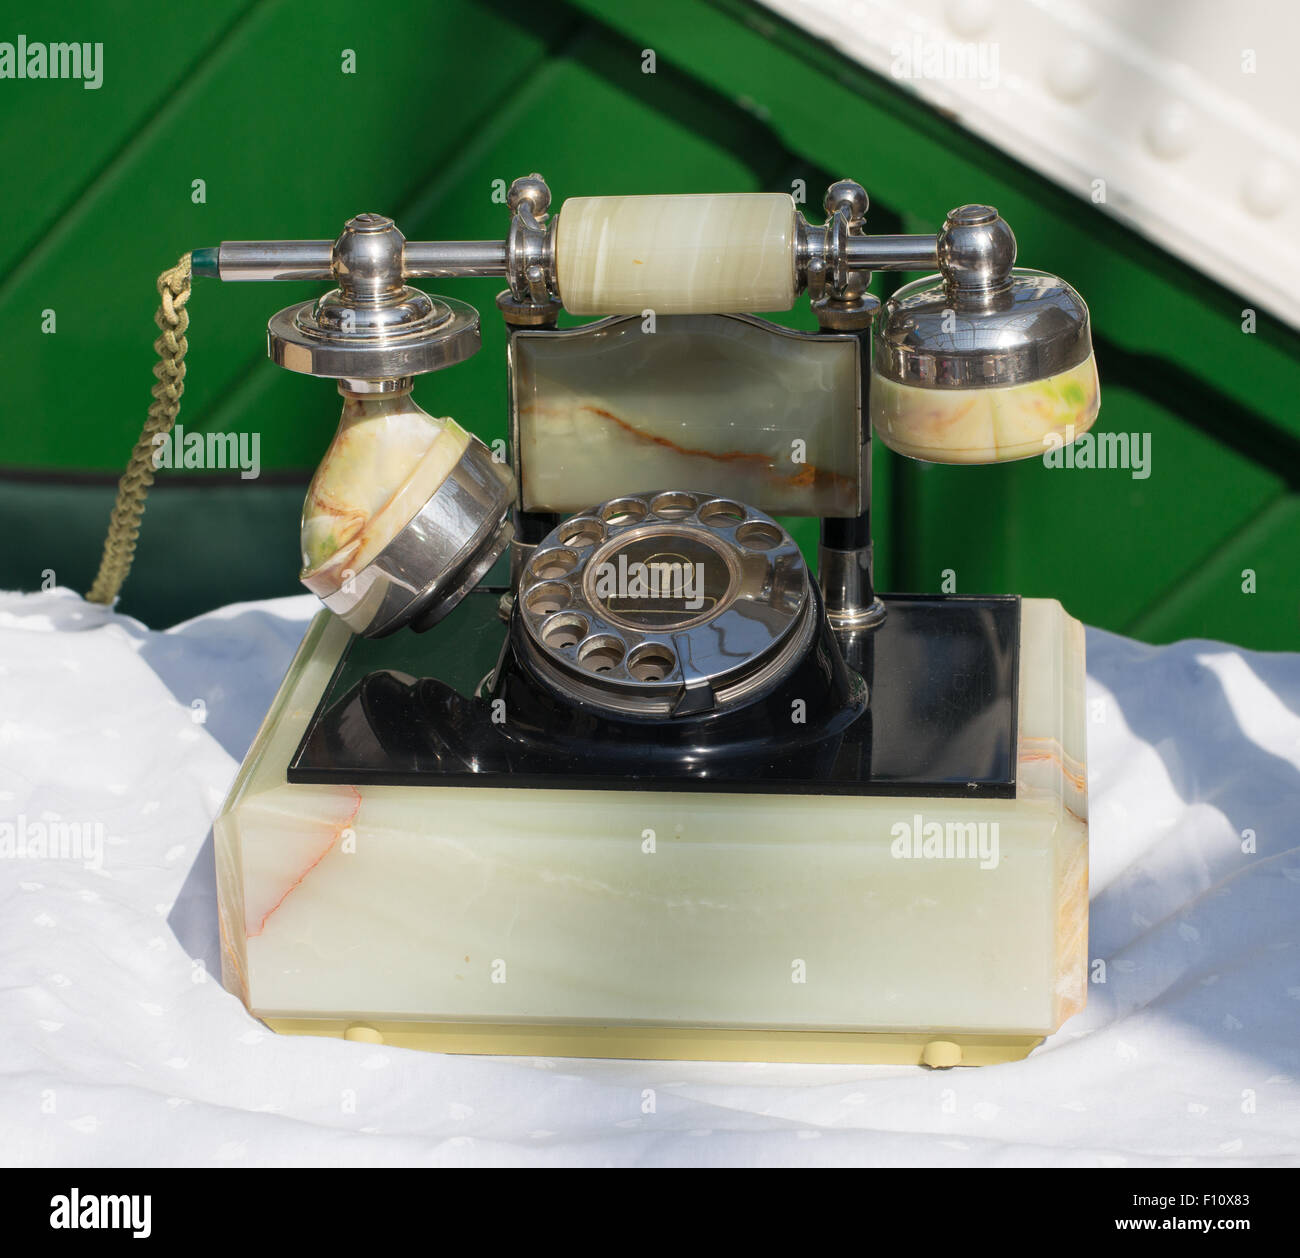 Onyx repro rotary  dial telephone by BT, circa 1985 seen at Tynemouth station market, North Tyneside, England, UK - Stock Image